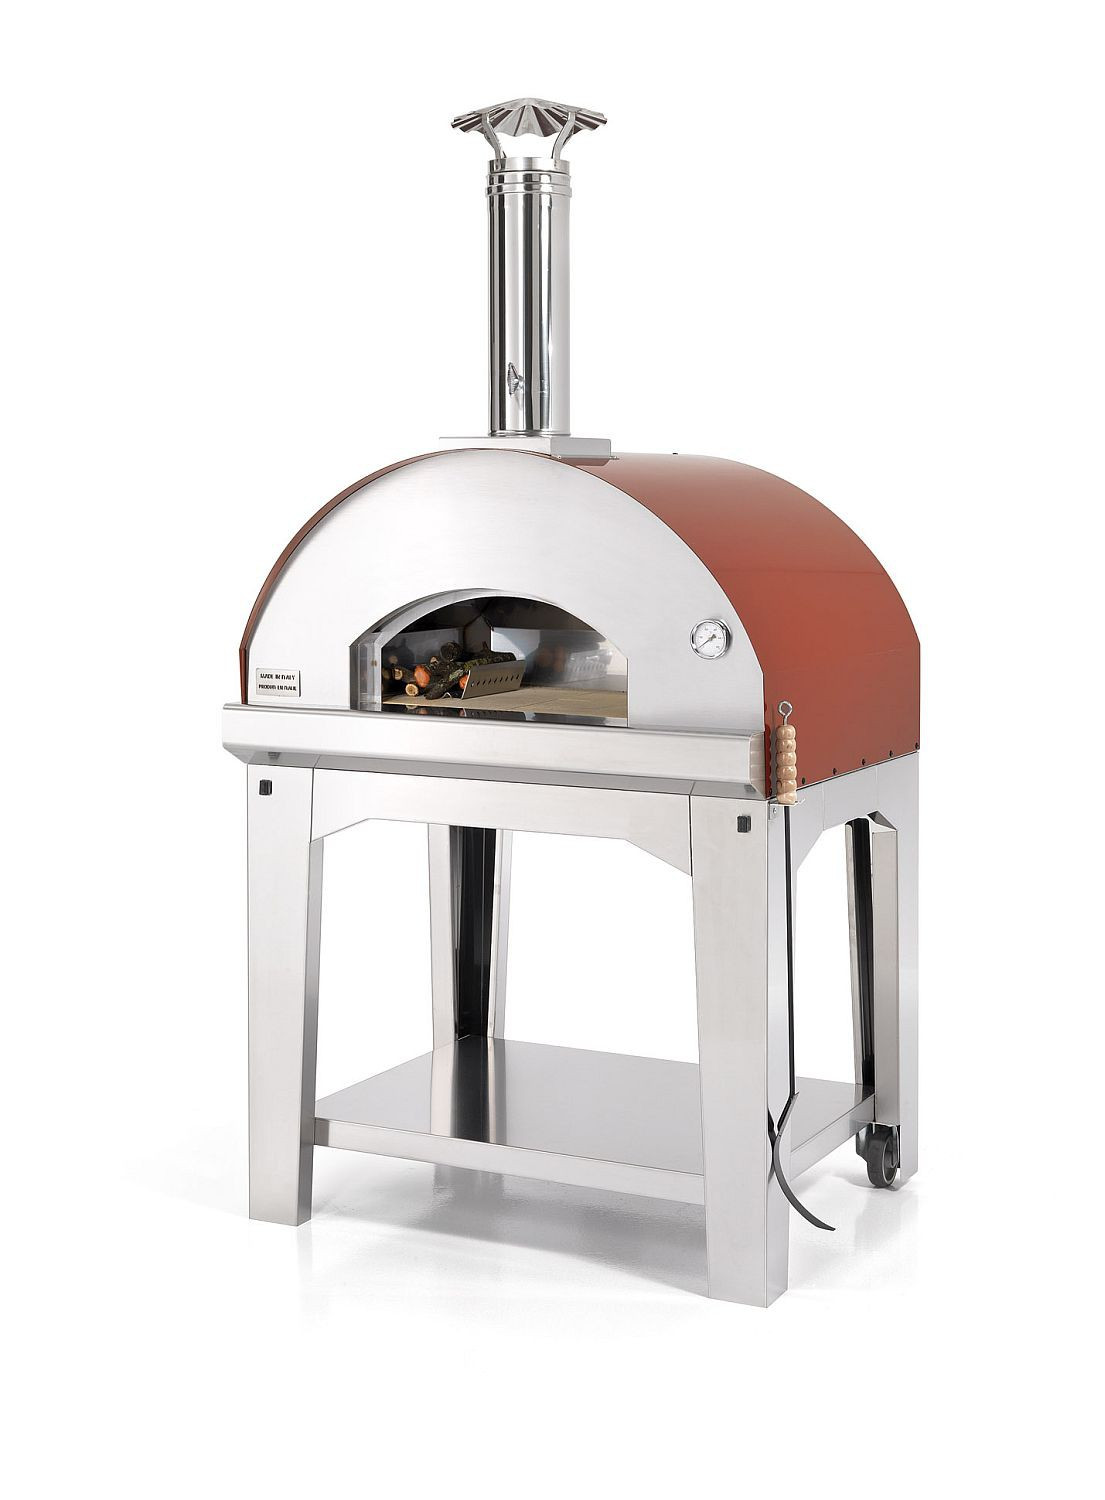 Pizzaofen Holzbackofen Mangiafuoco in Dachfarbe rot